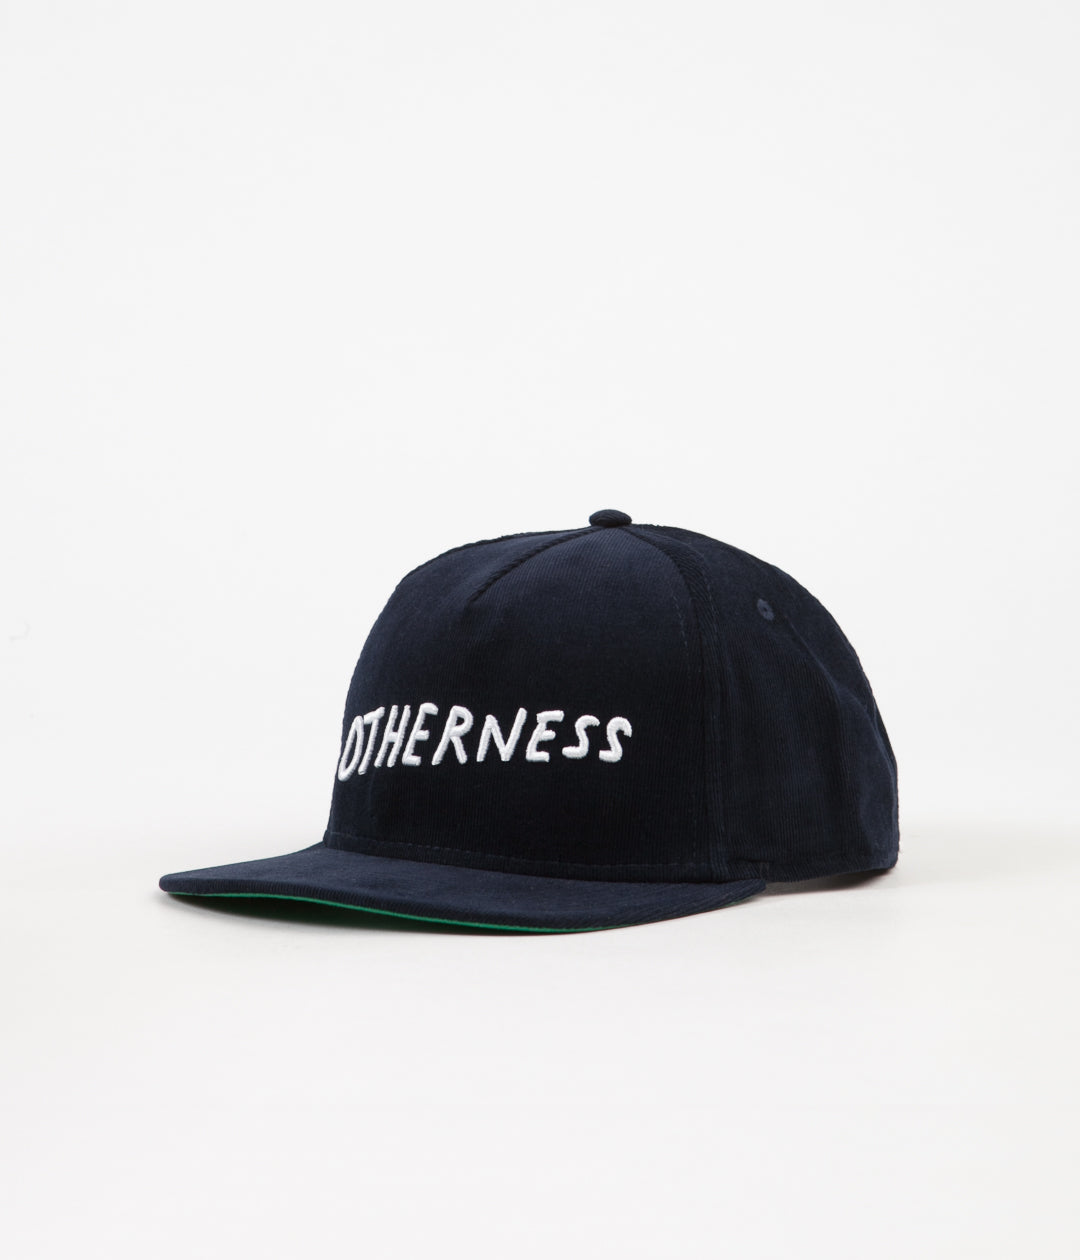 Otherness Corduroy Cap - Navy / White